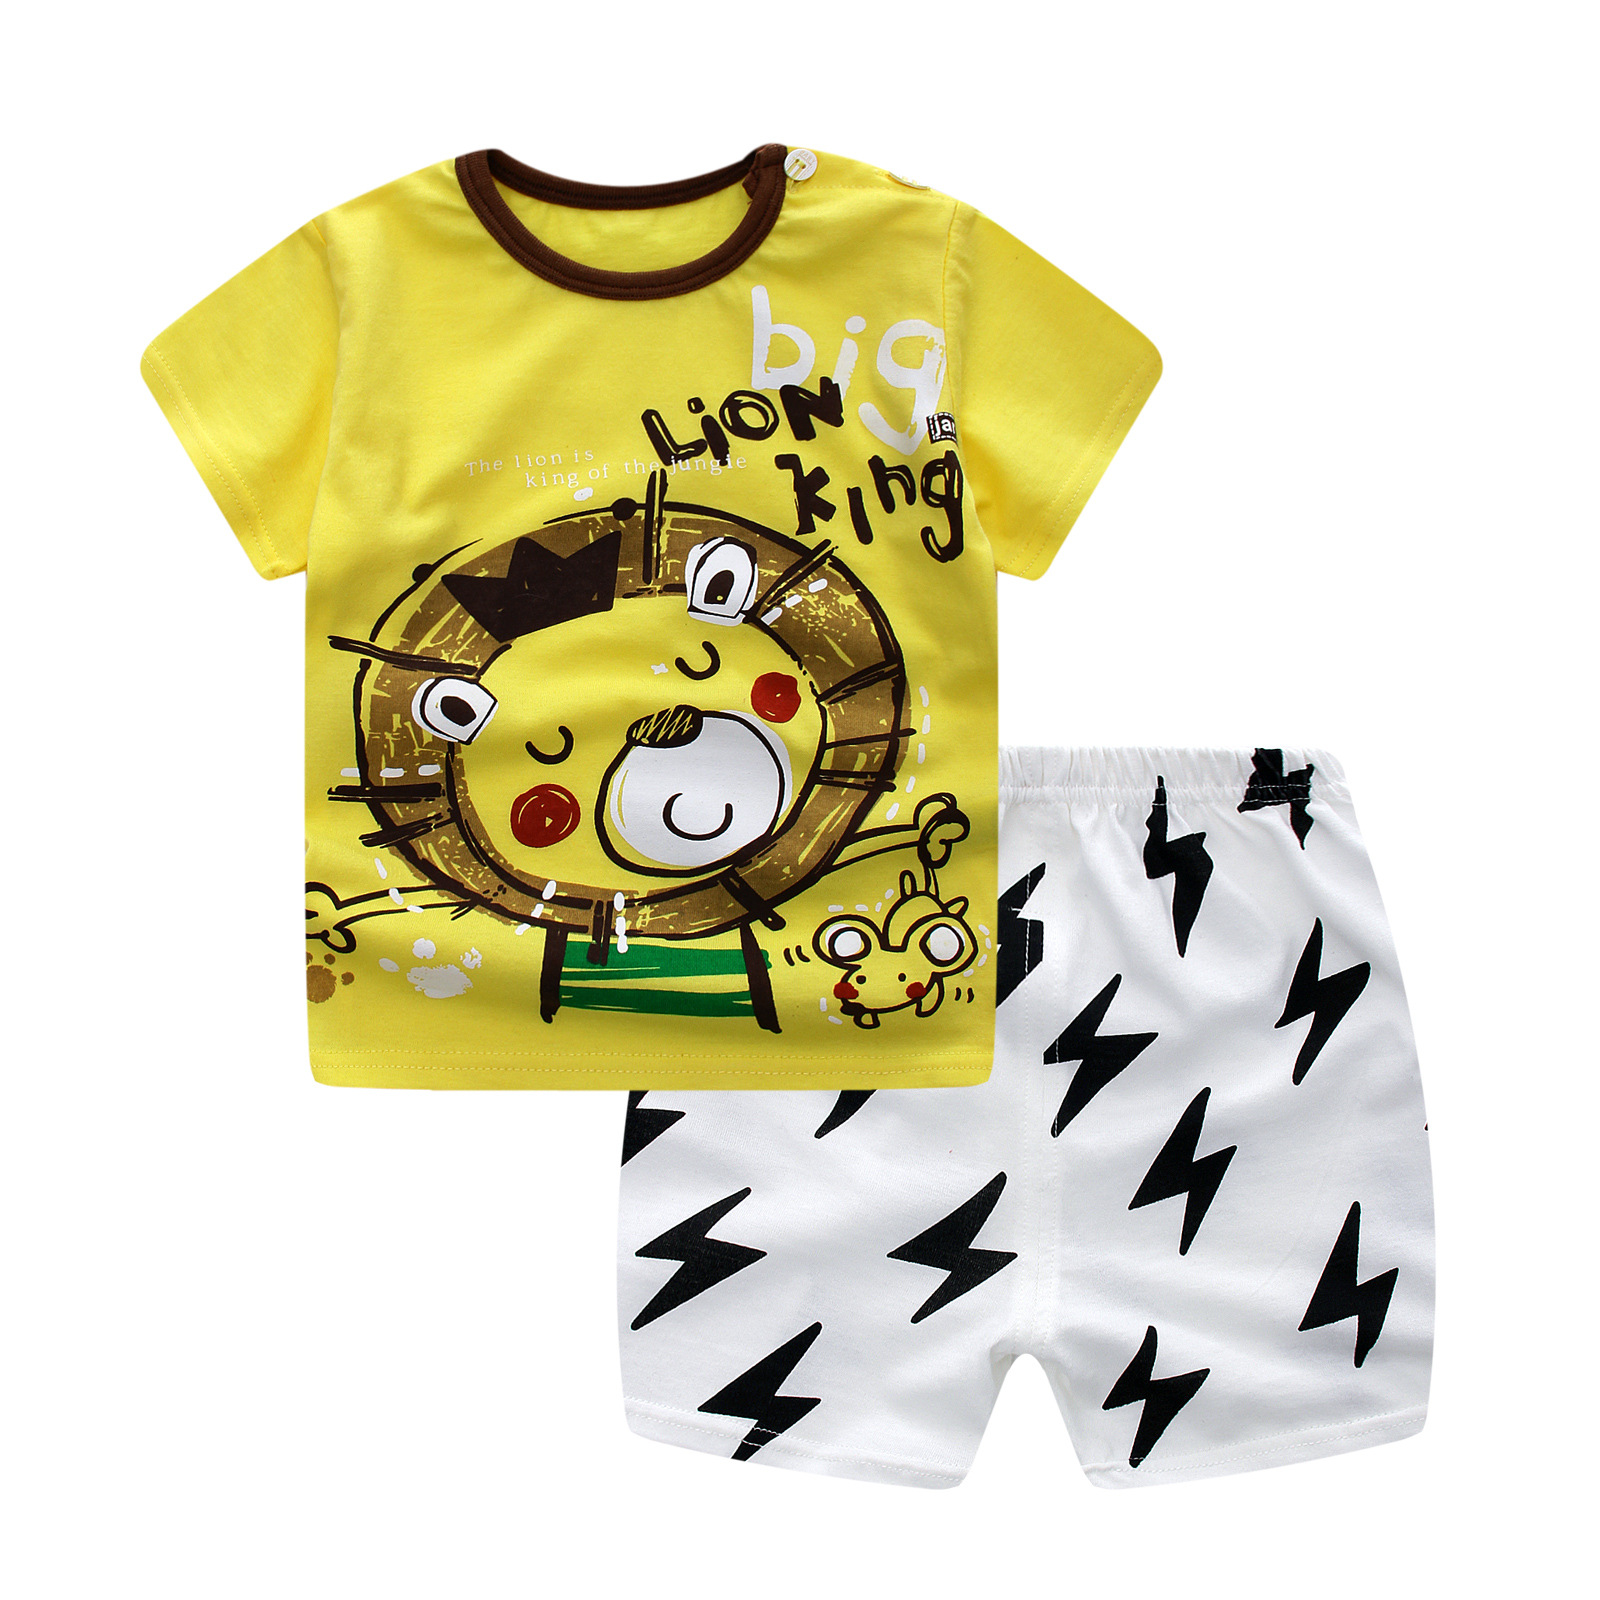 2pcs set Baby Boy Clothes Summer 2018 cotton Short sleeve Newborn Baby Boys Clothes Set Cartoon Baby Clothing Suit (Shirt+Pants) shirt baby boy summer clothes shorts sets baby boy set 100 cotton newborn baby girl summer clothes infant clothing suit outfits